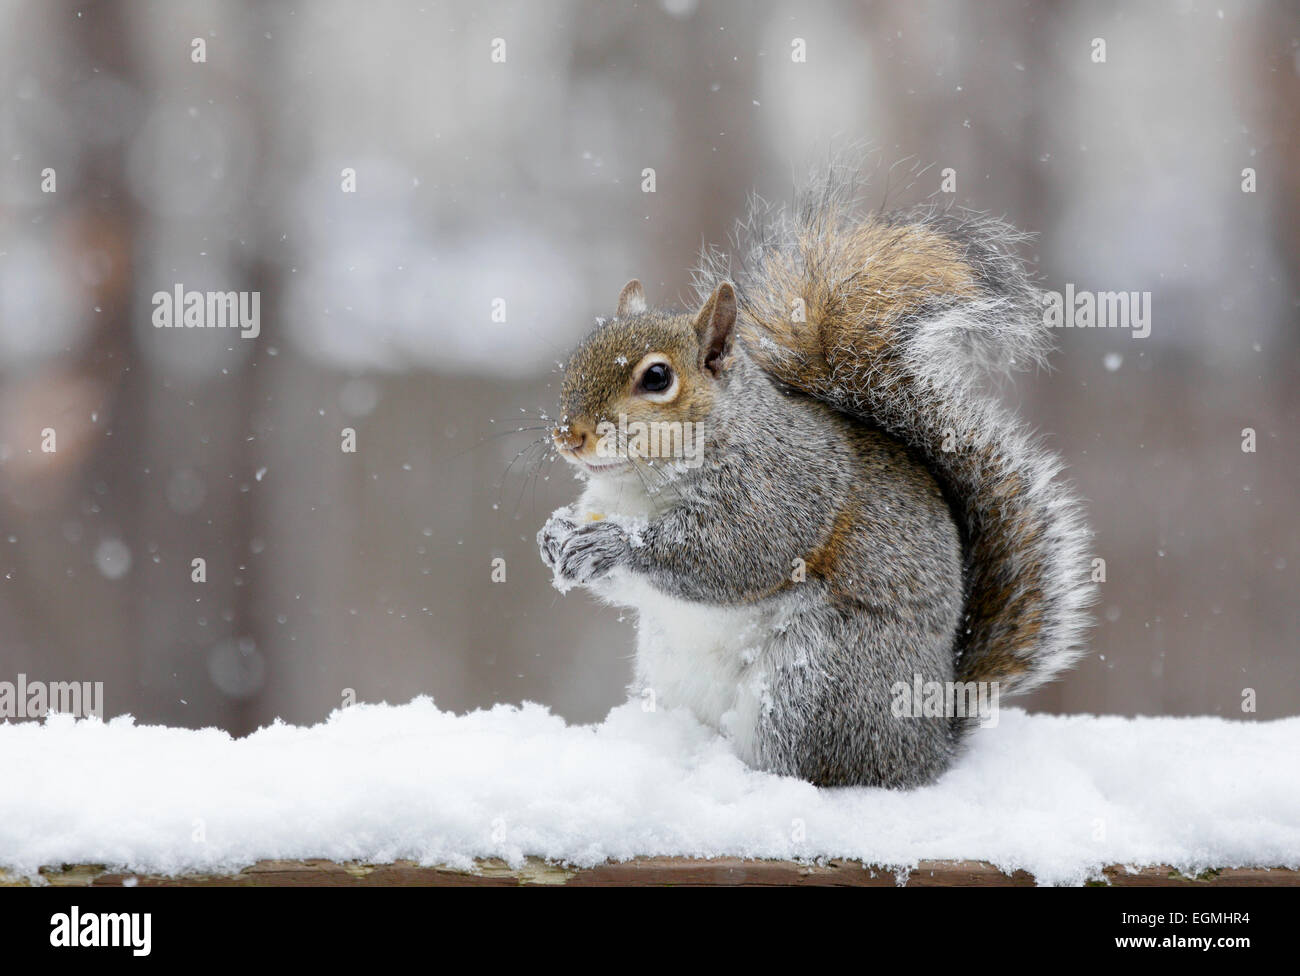 eastern-grey-sqiurrel-sciurus-carolinensis-in-the-snow-EGMHR4.jpg